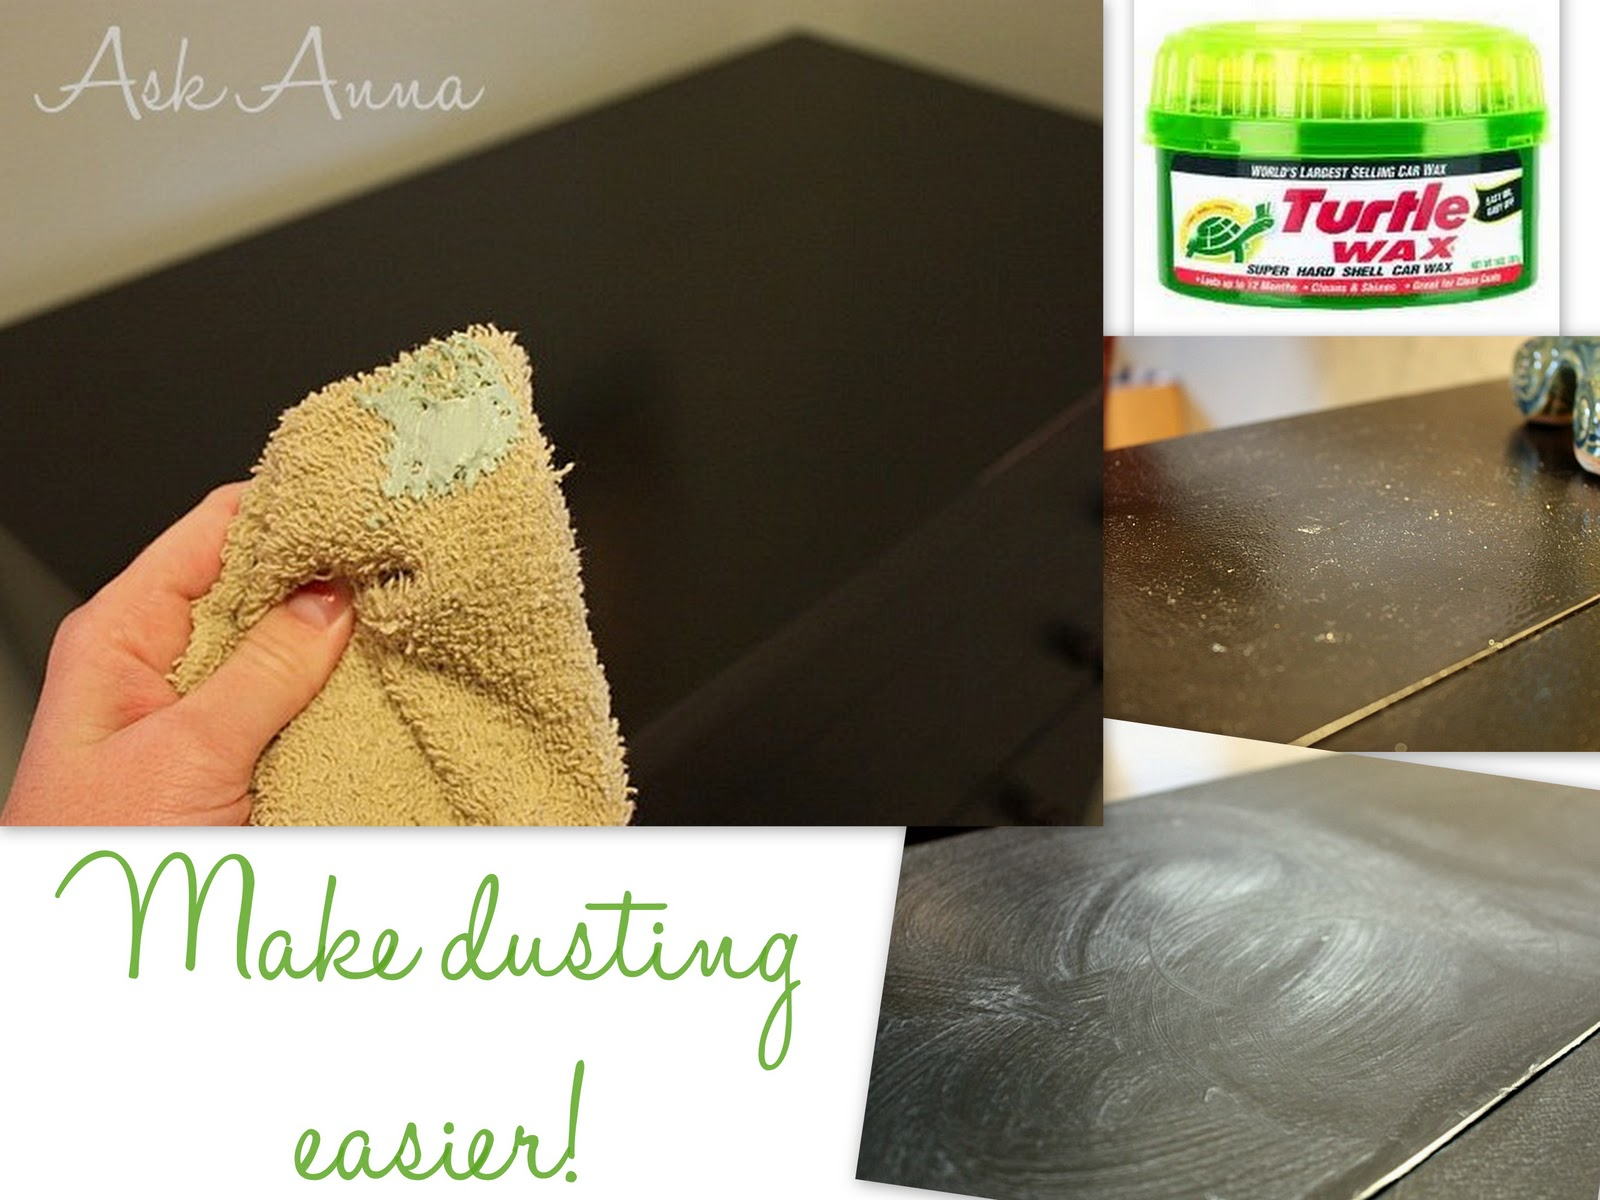 Day #2: Getting Rid of Dust